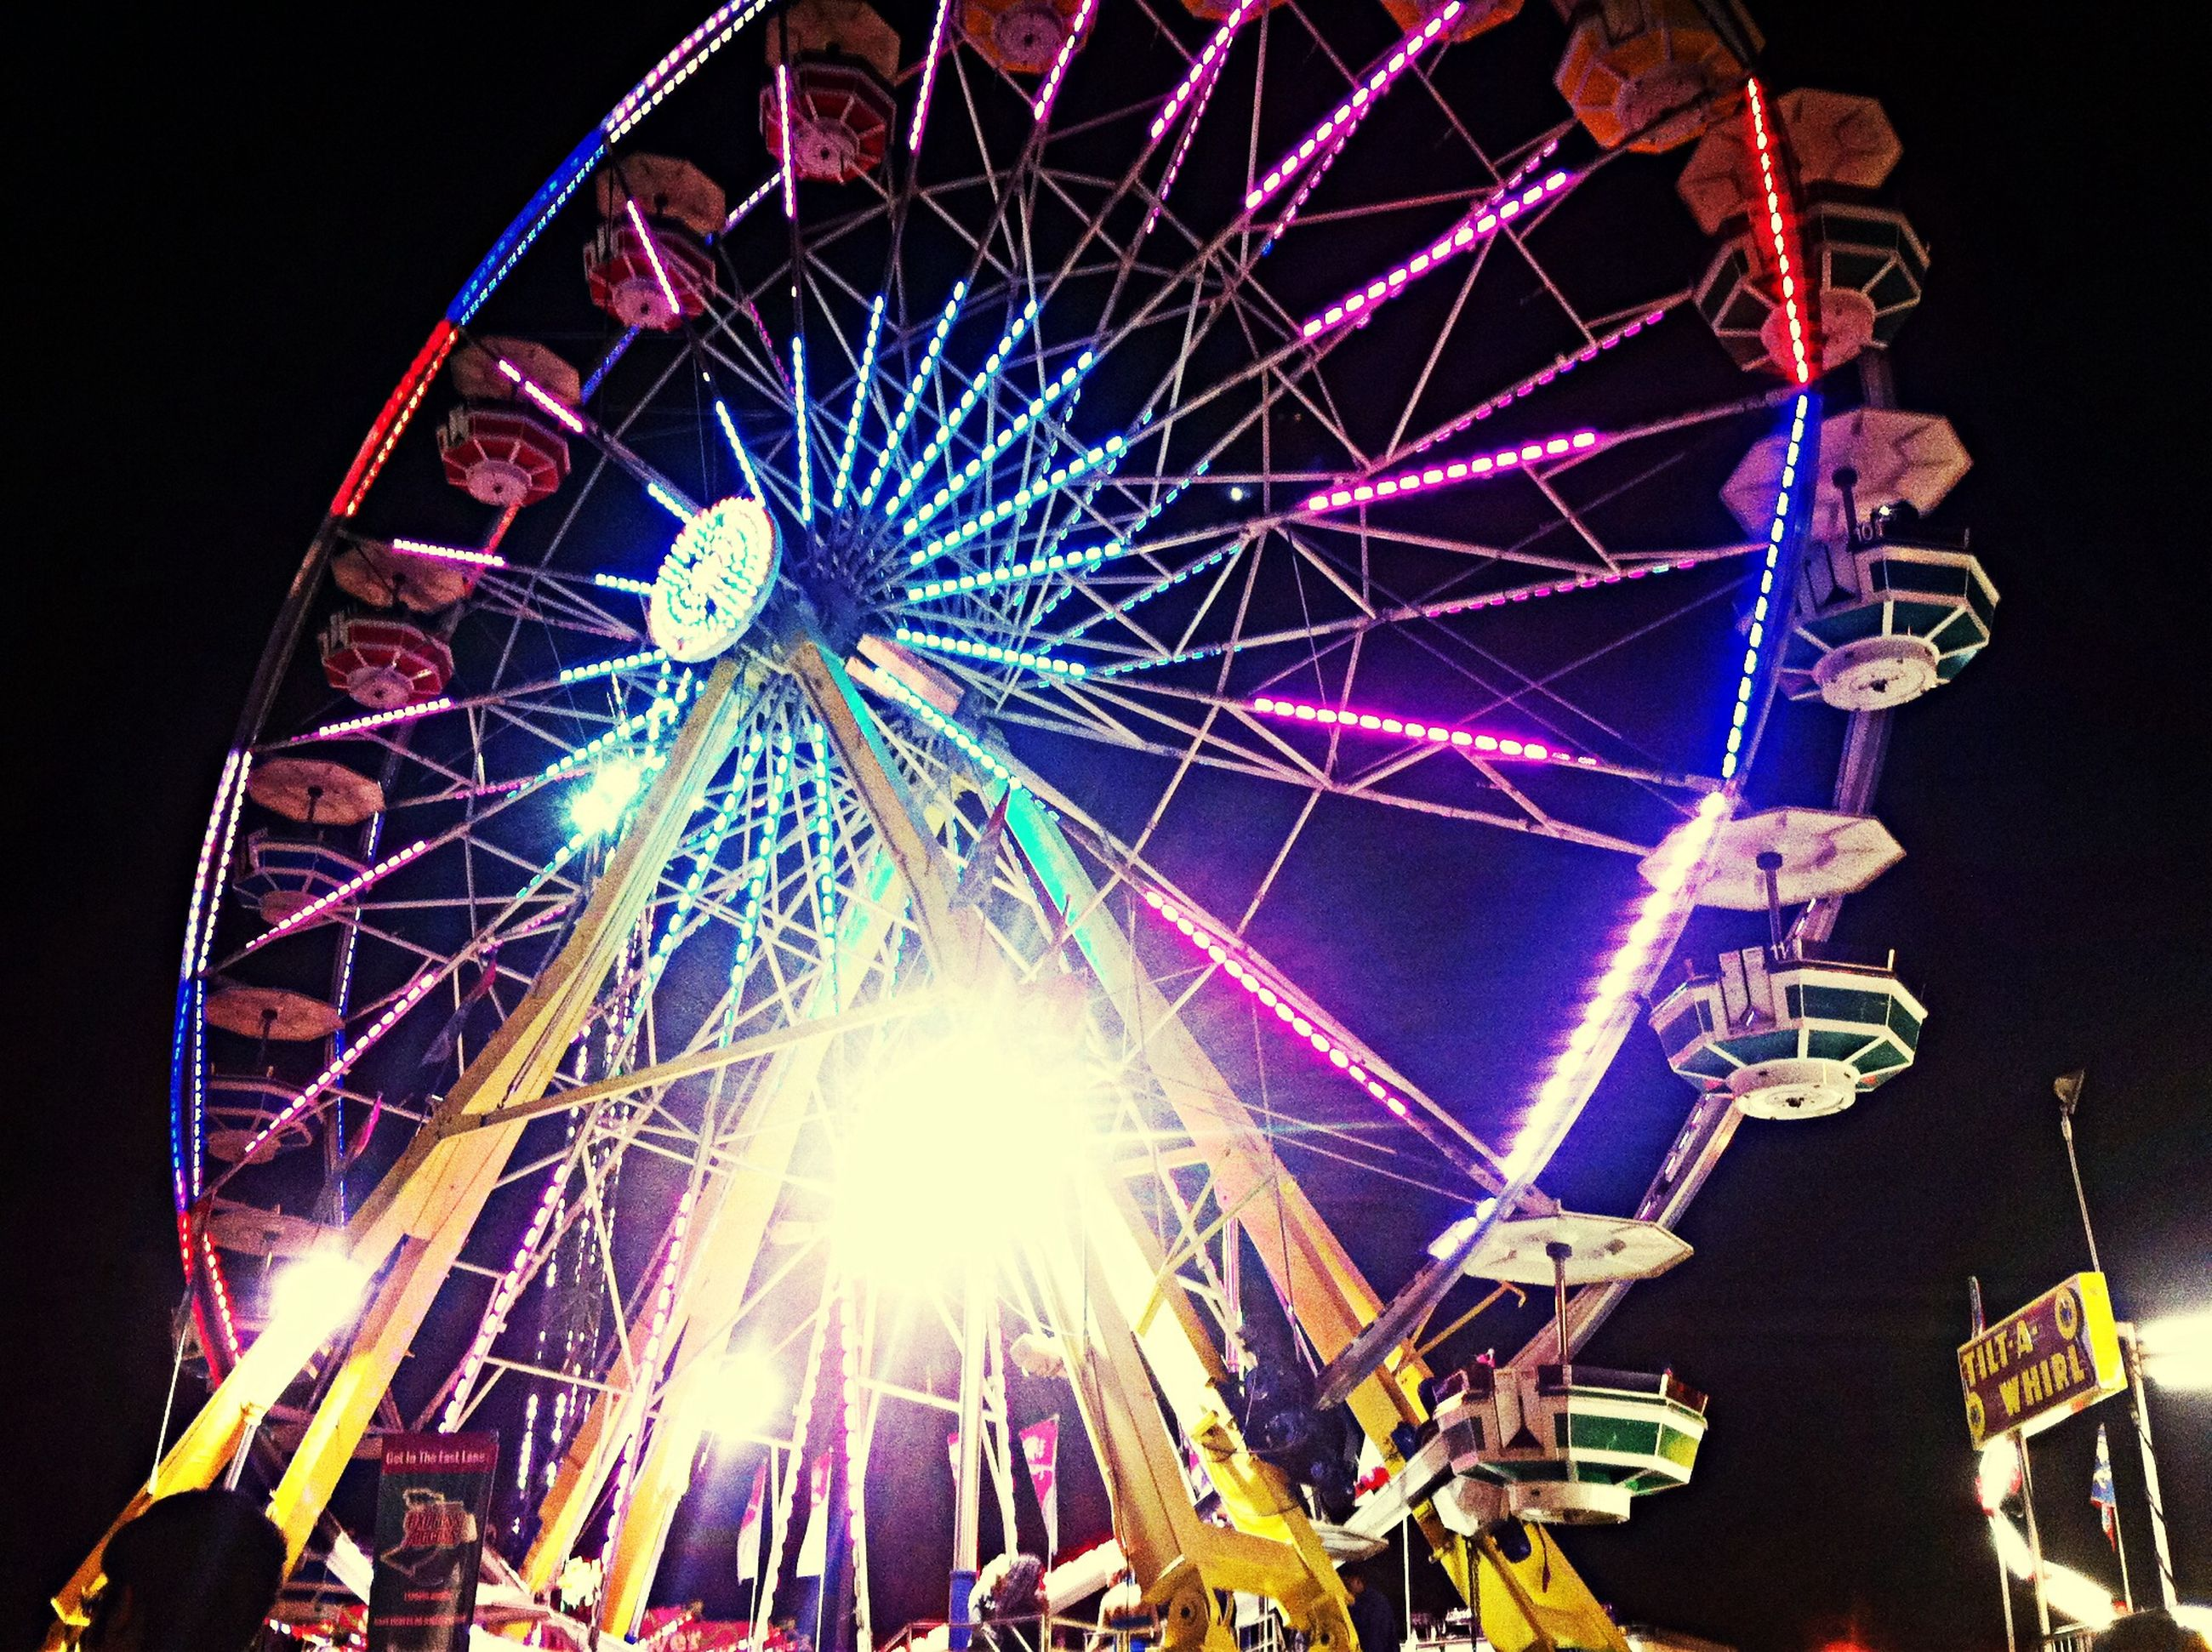 arts culture and entertainment, amusement park, amusement park ride, ferris wheel, night, illuminated, low angle view, sky, built structure, enjoyment, traveling carnival, architecture, fun, firework display, motion, clear sky, celebration, leisure activity, big wheel, outdoors